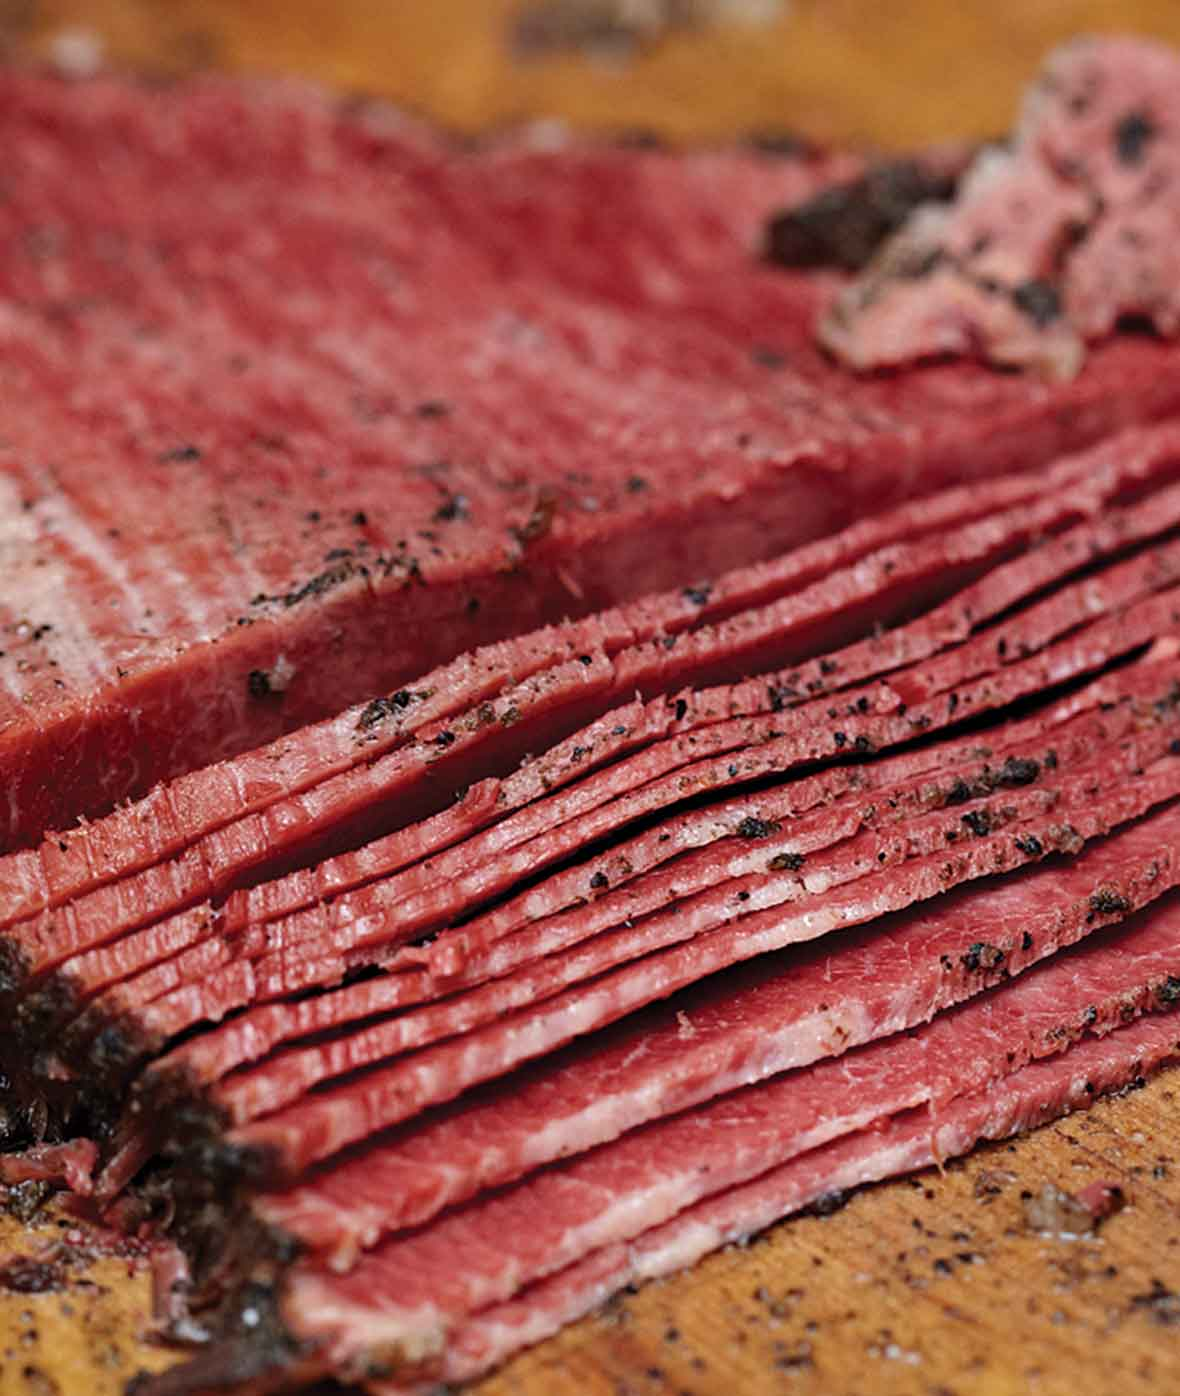 A partially sliced homemade pastrami on a wooden board.